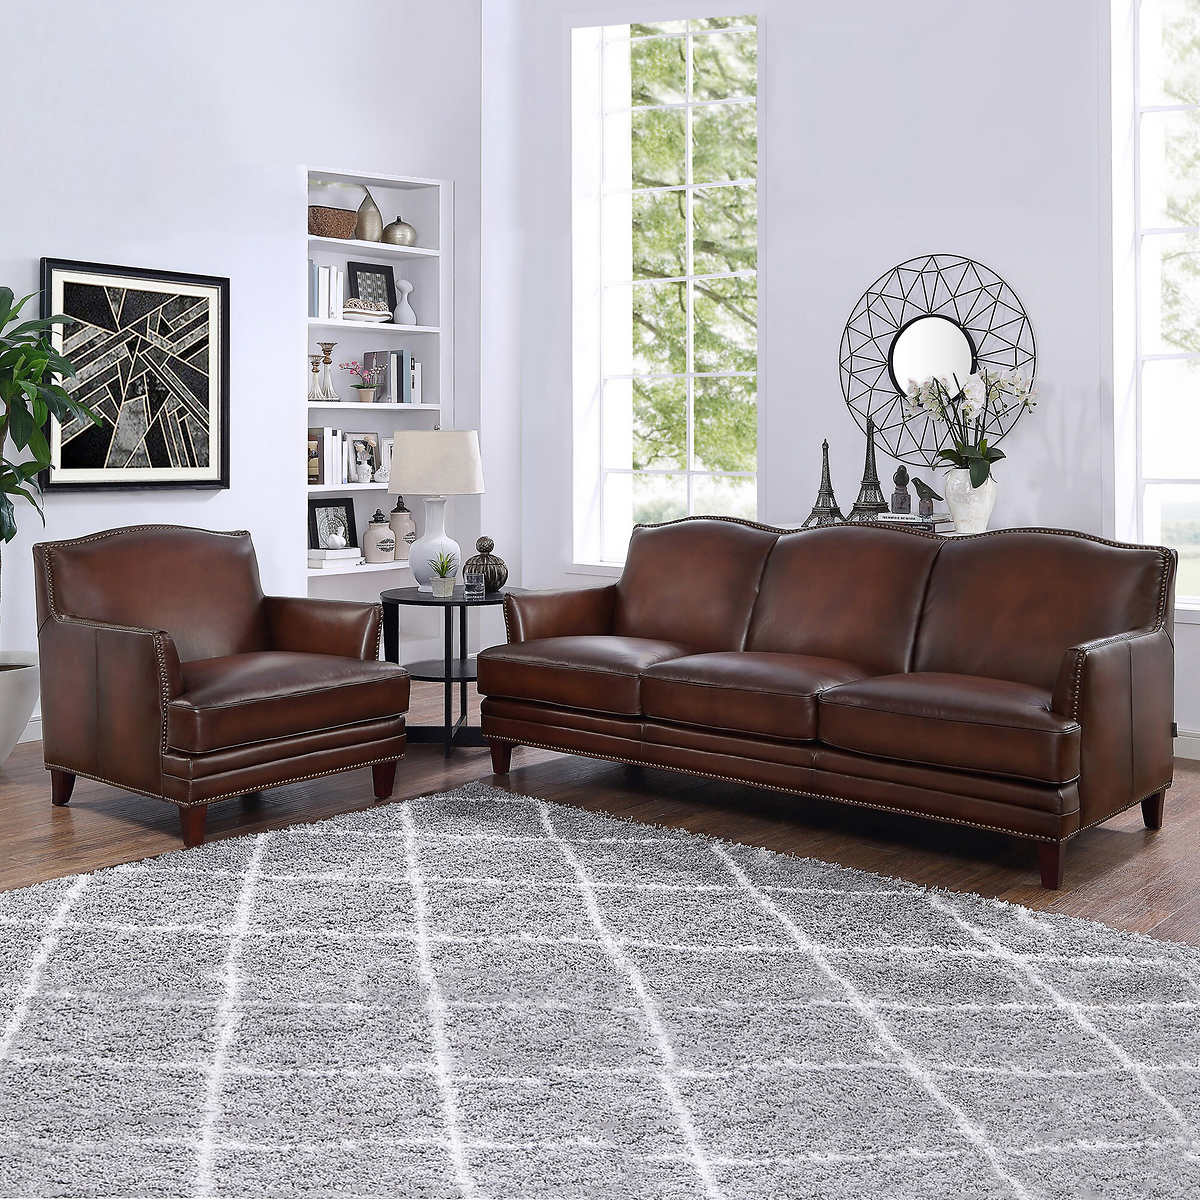 Caterina 2-piece Top Grain Leather Set - Sofa, Chair